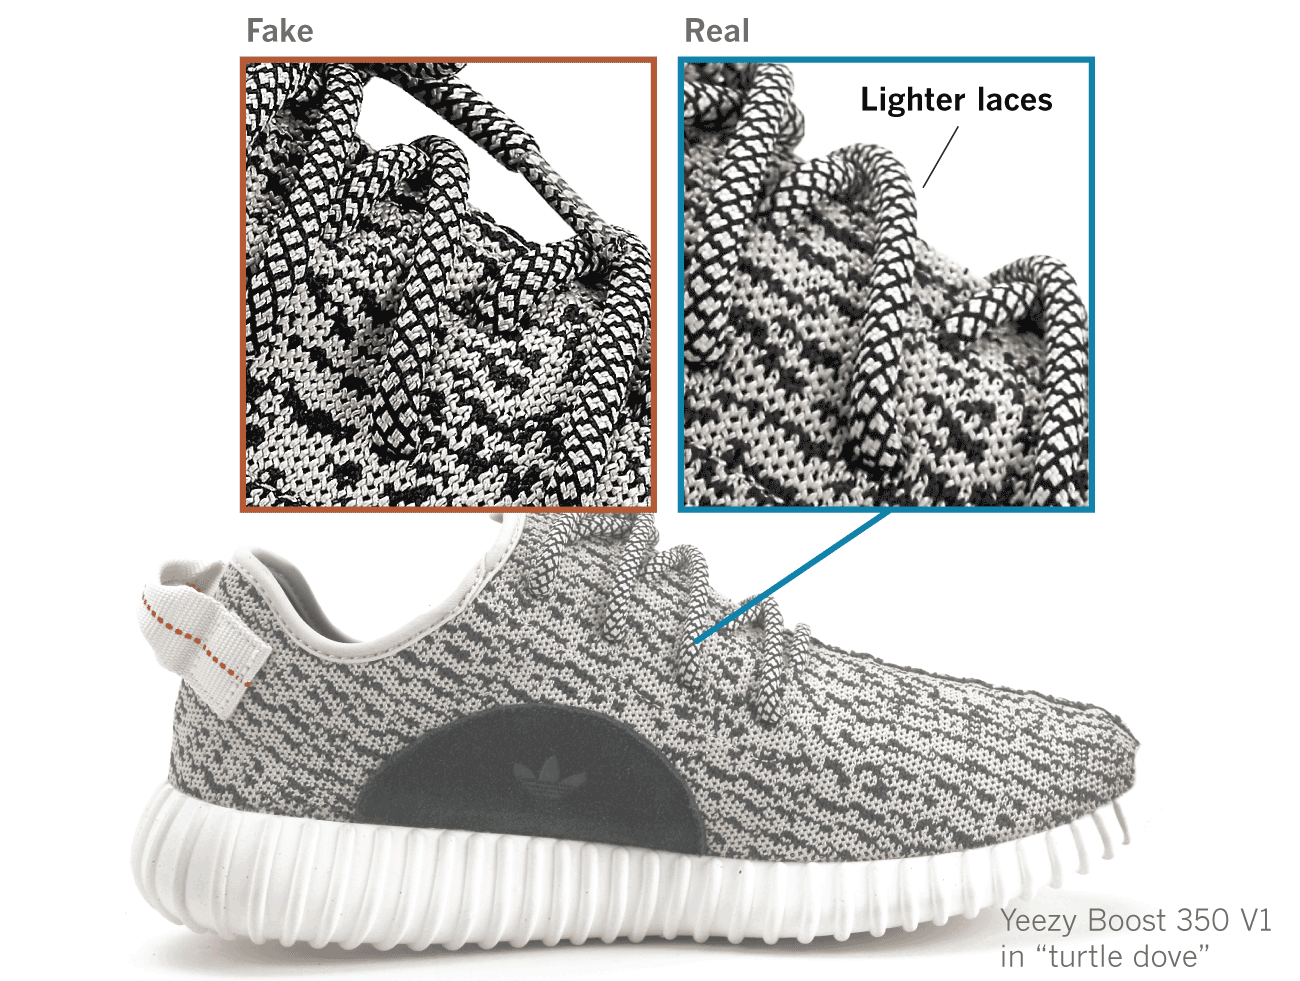 ... Adidas Yeezy has become so sophisticated that even some of the most  astute fans can t tell the difference between a well-made fake and the real  deal. b3b87dfde